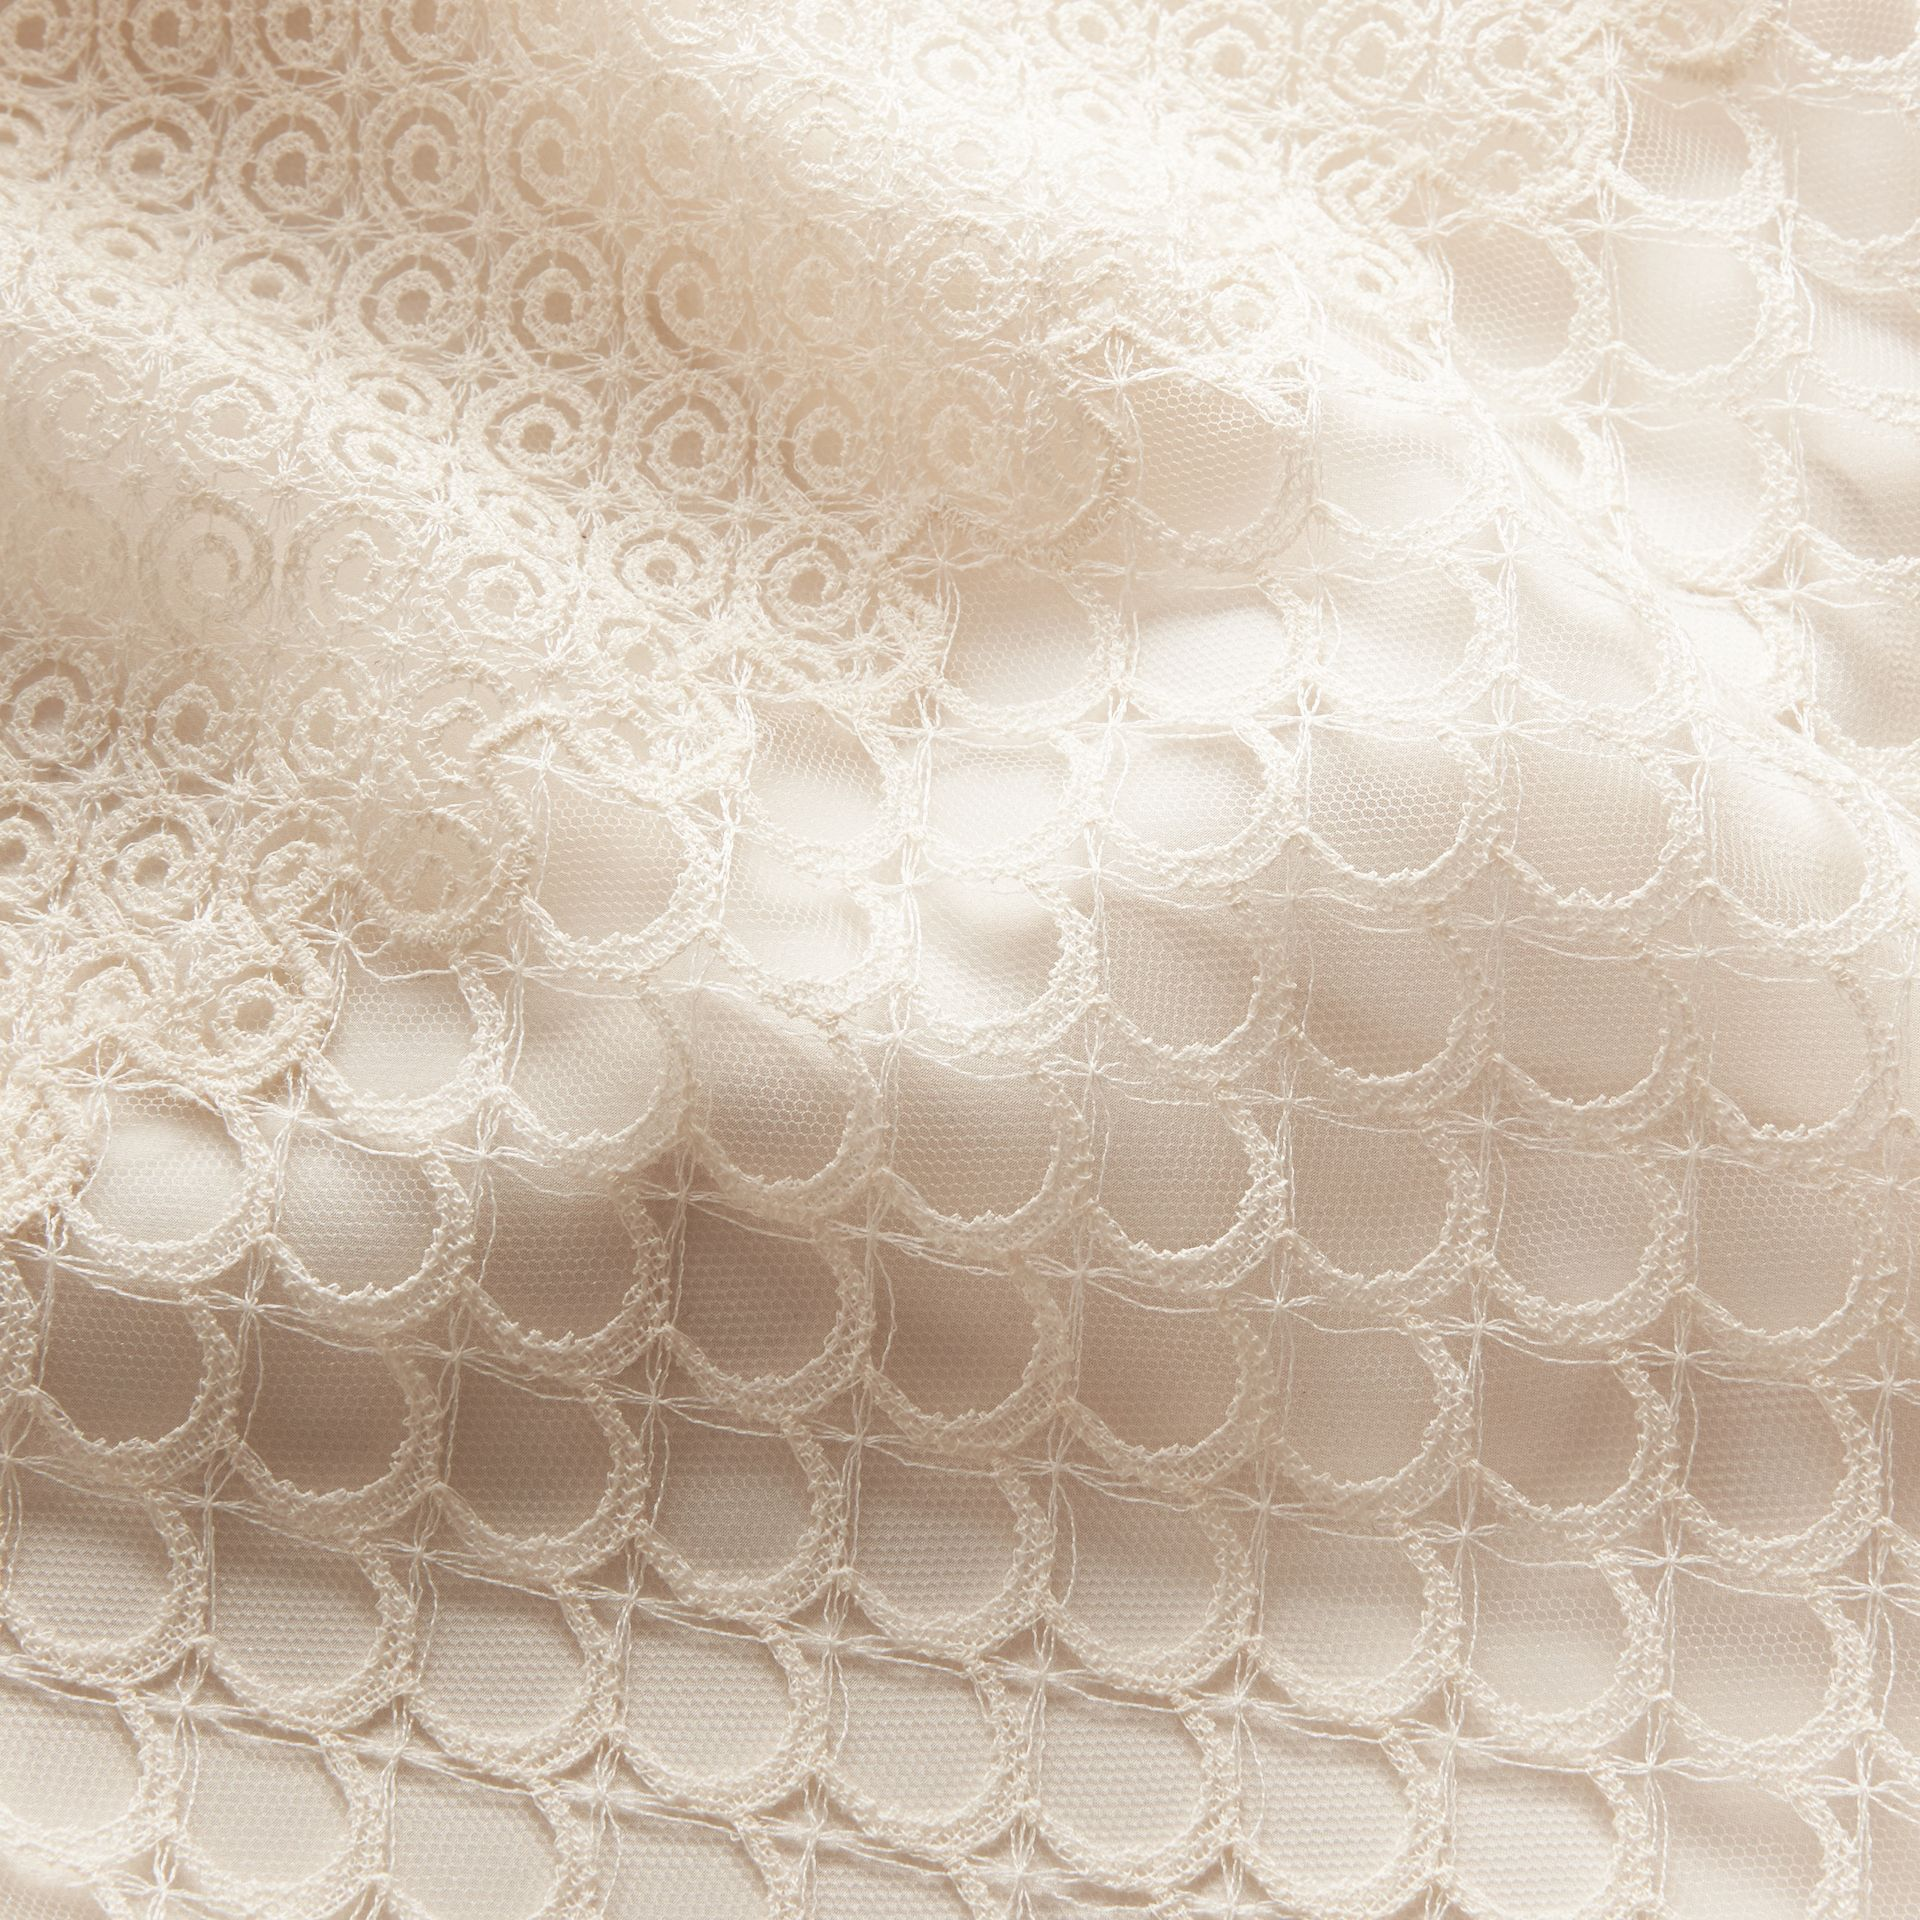 Macramé Lace Peplum Skirt in Natural White - Women | Burberry - gallery image 2